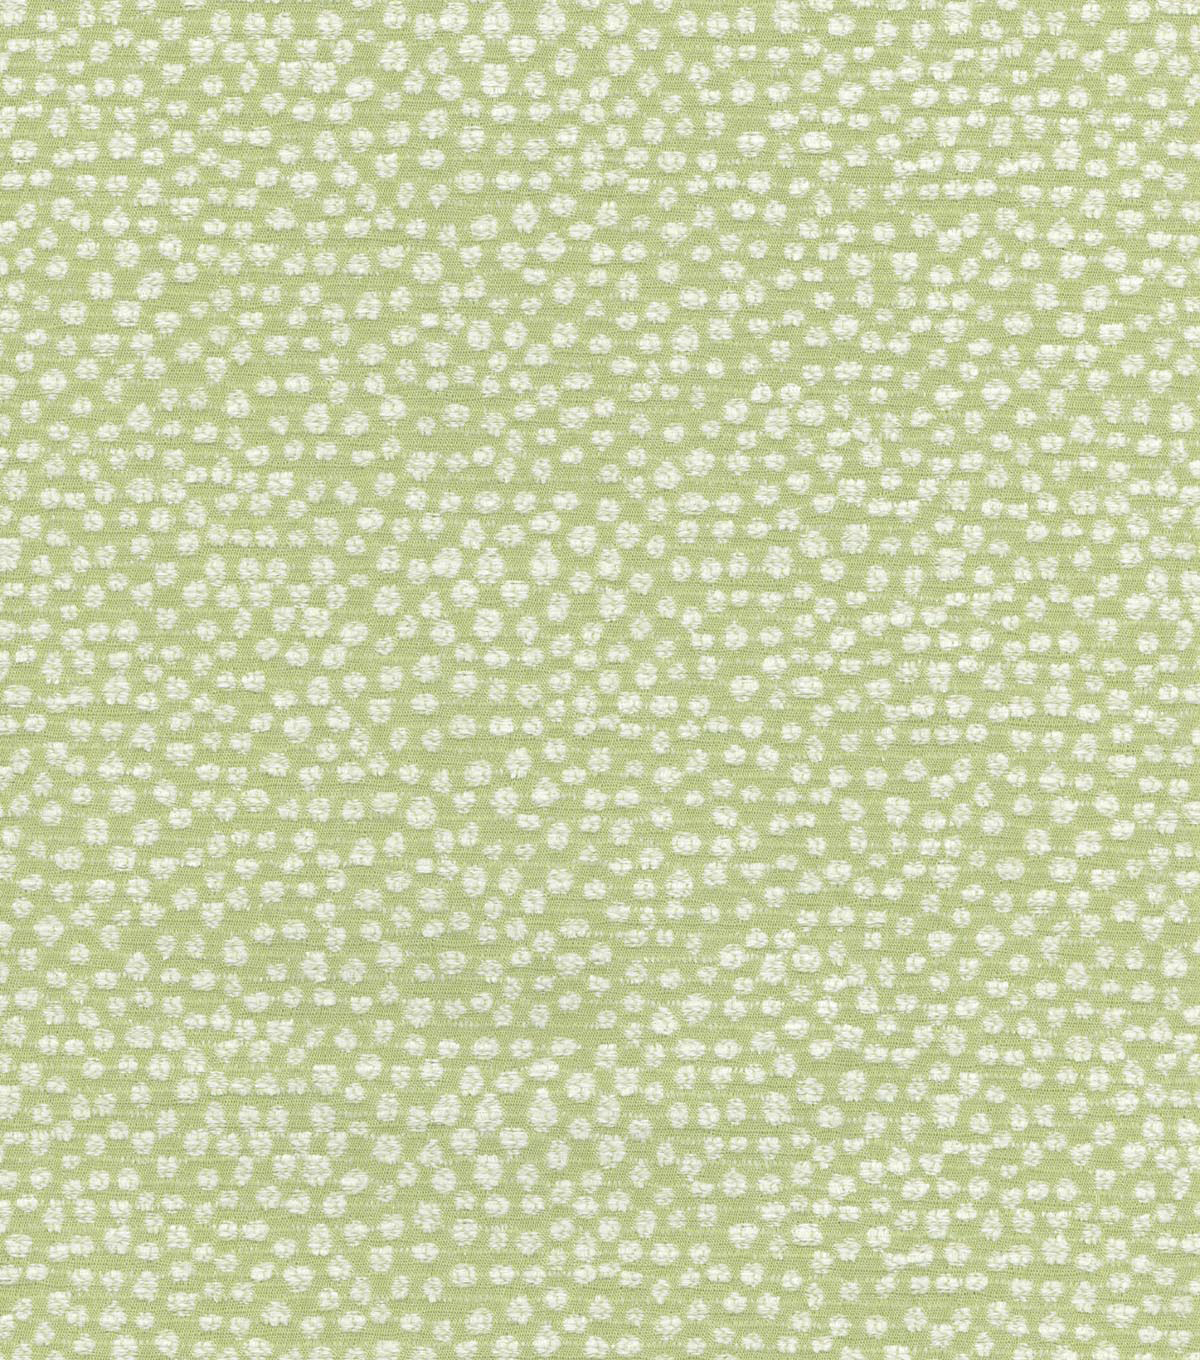 Waverly Upholstery Fabric 55\u0022-Pebble/Meadow